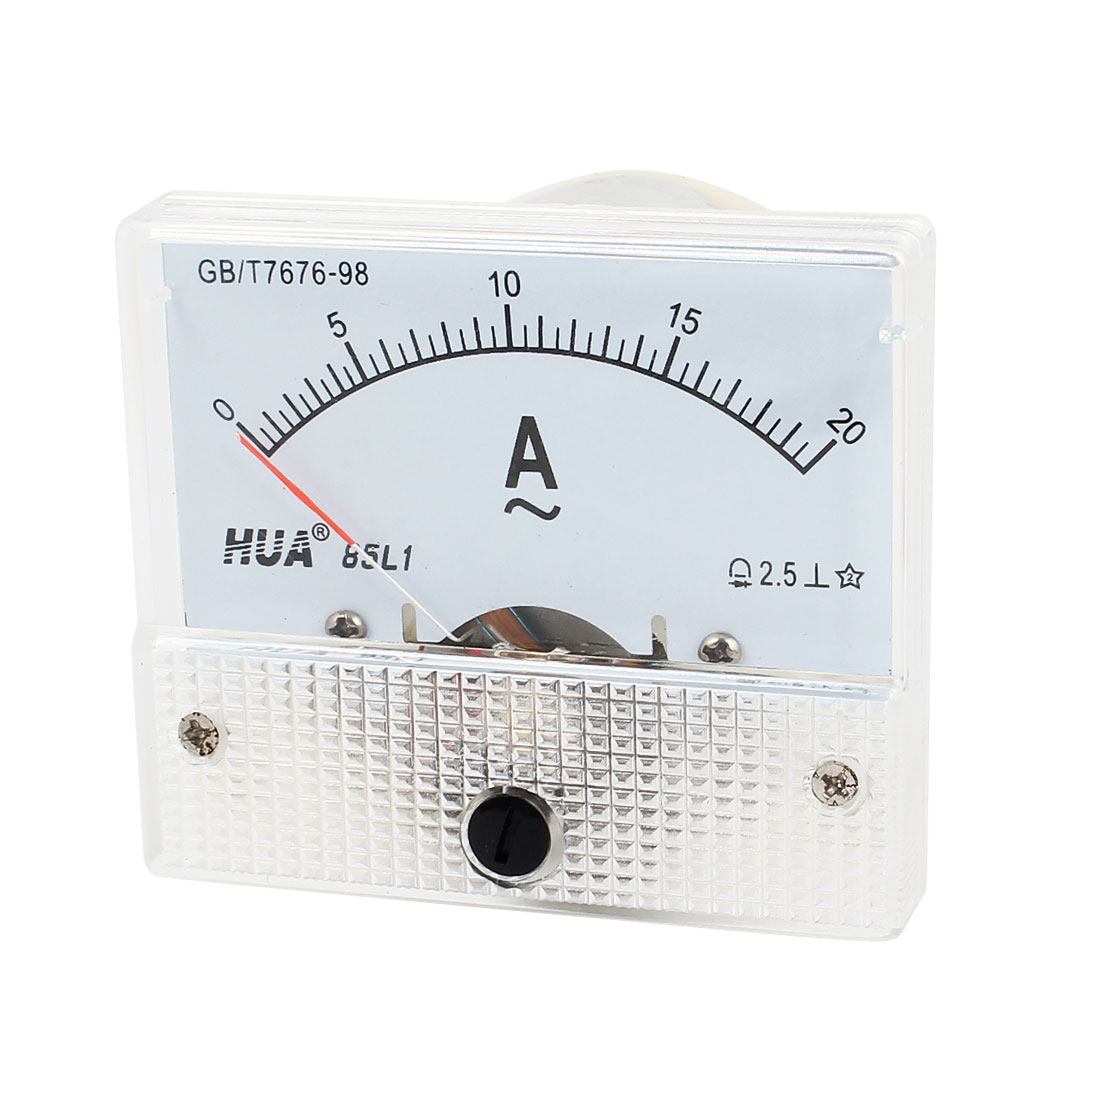 AC 0-20A Rectangle Analog Panel Ammeter Gauge 85L1-A